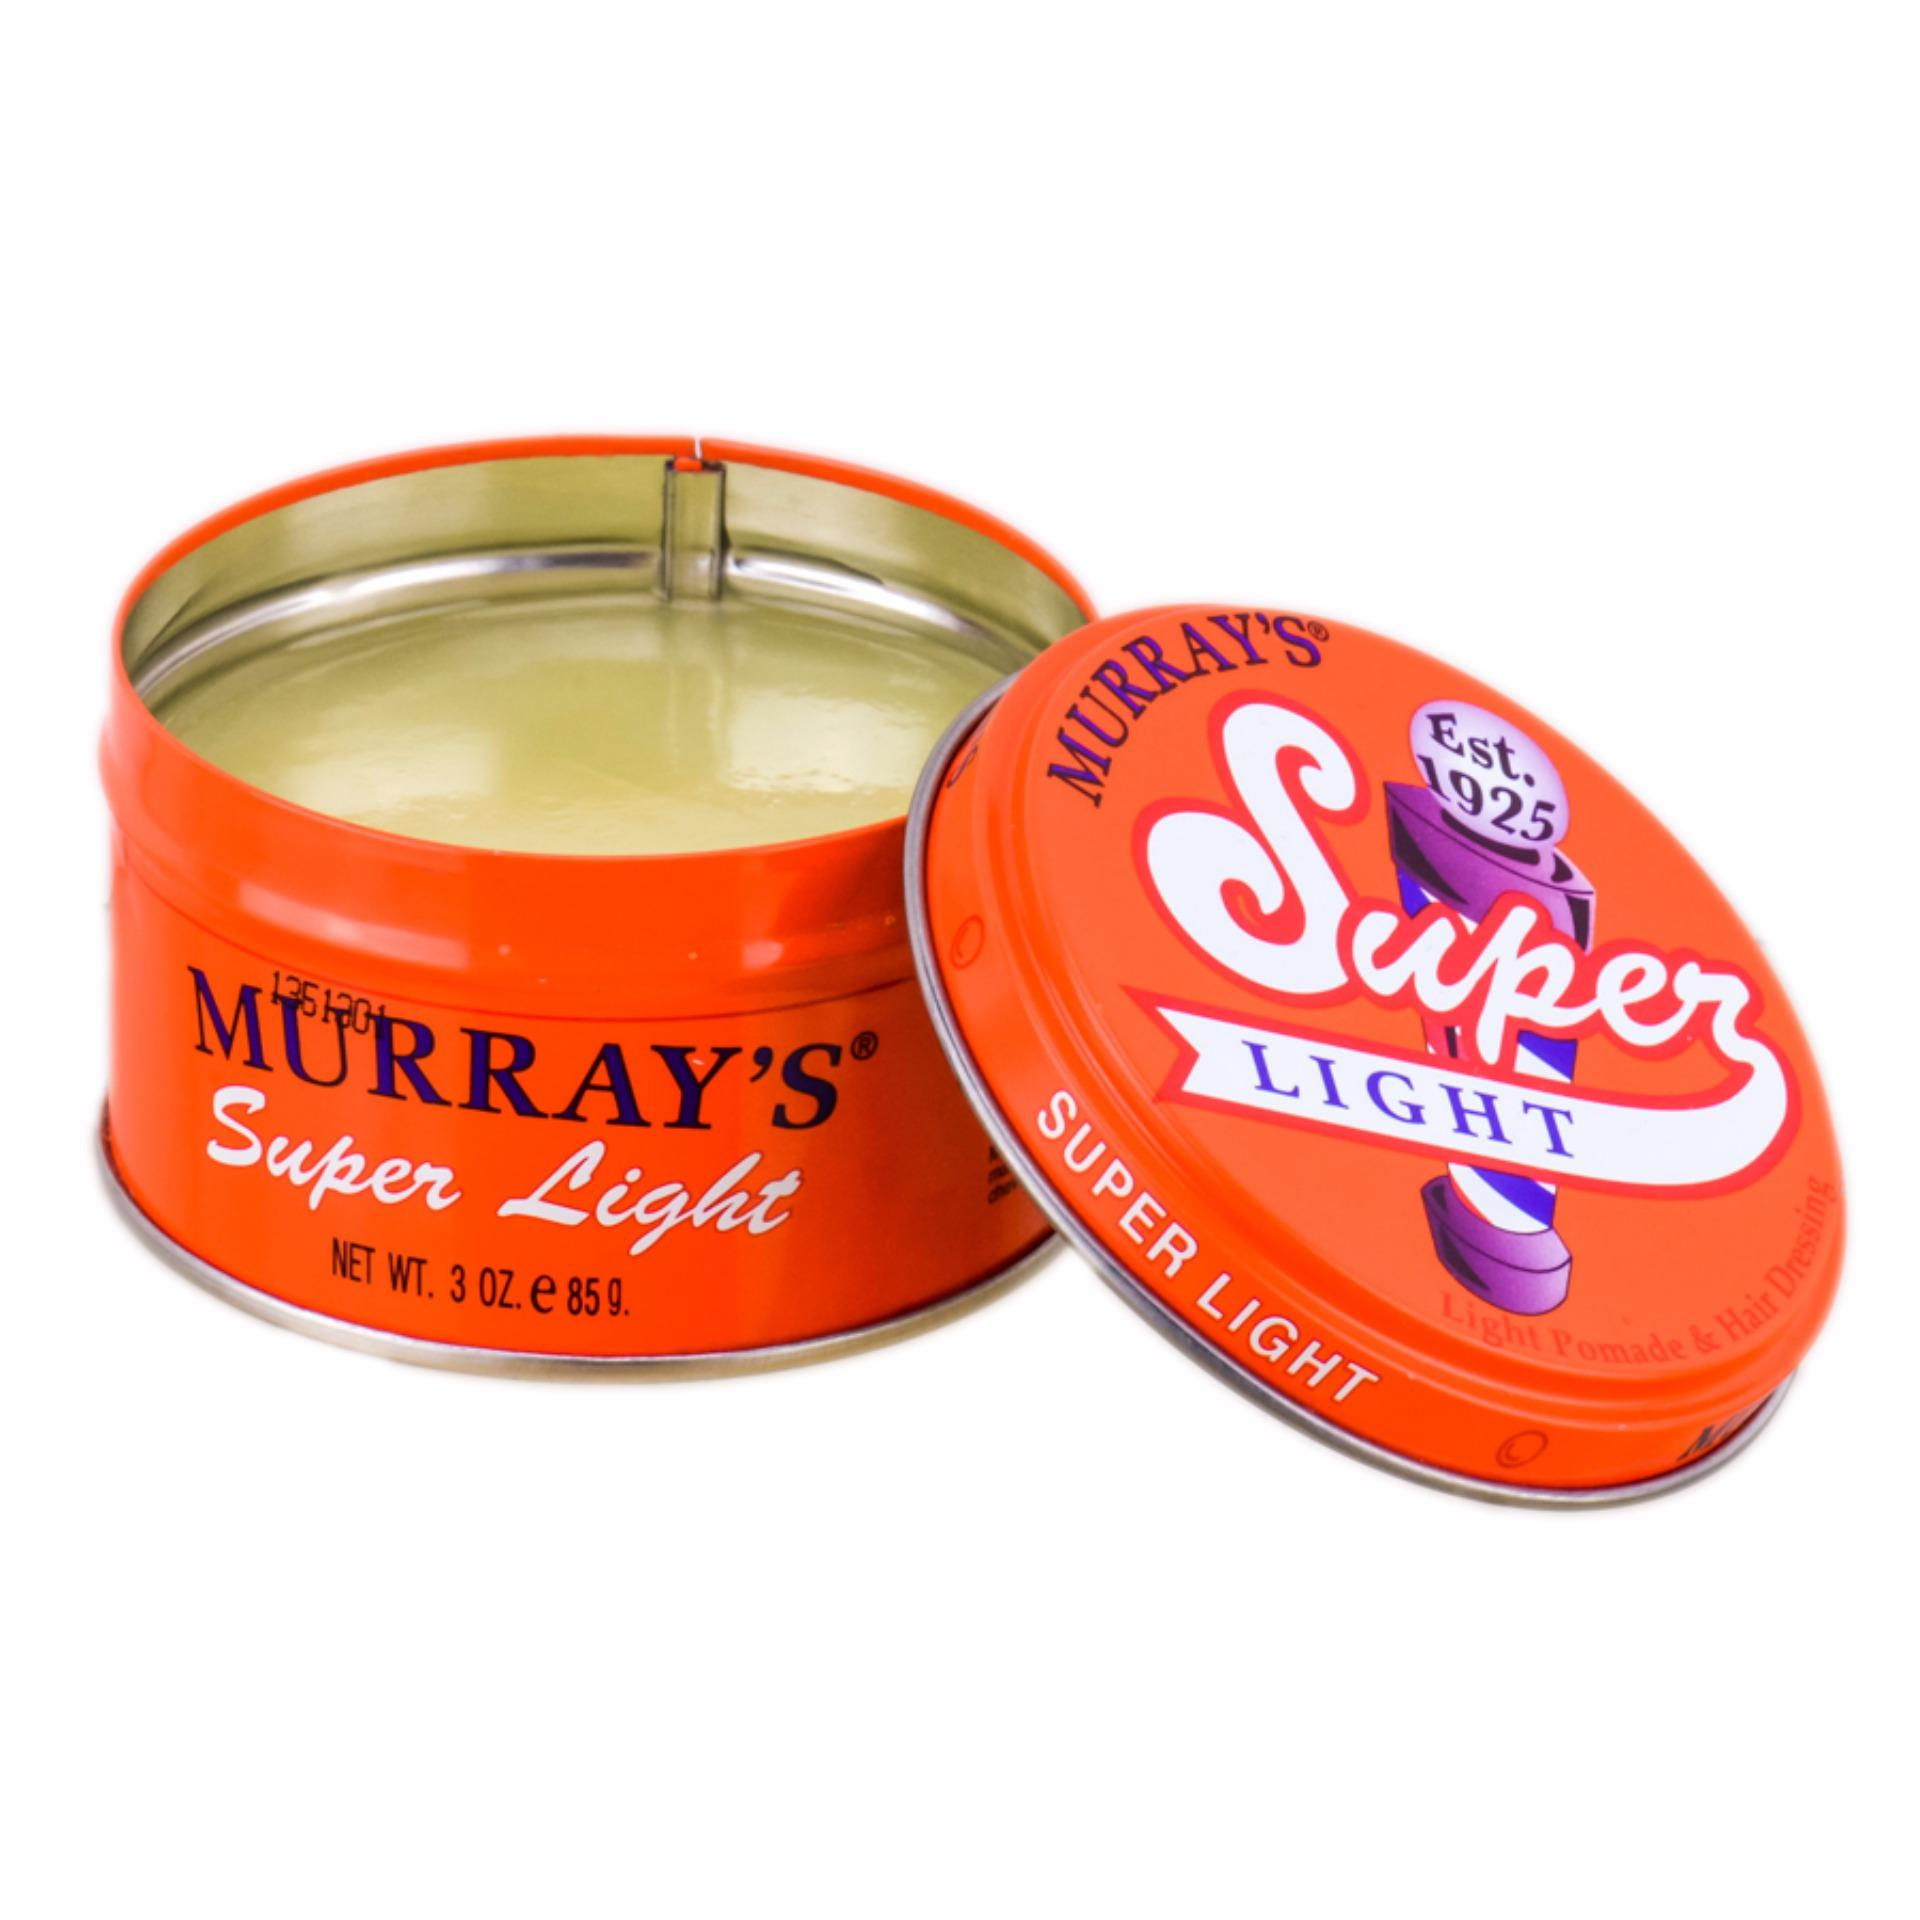 ULASAN Pomade Murray Murrays Superlight Oilbased Terbaik